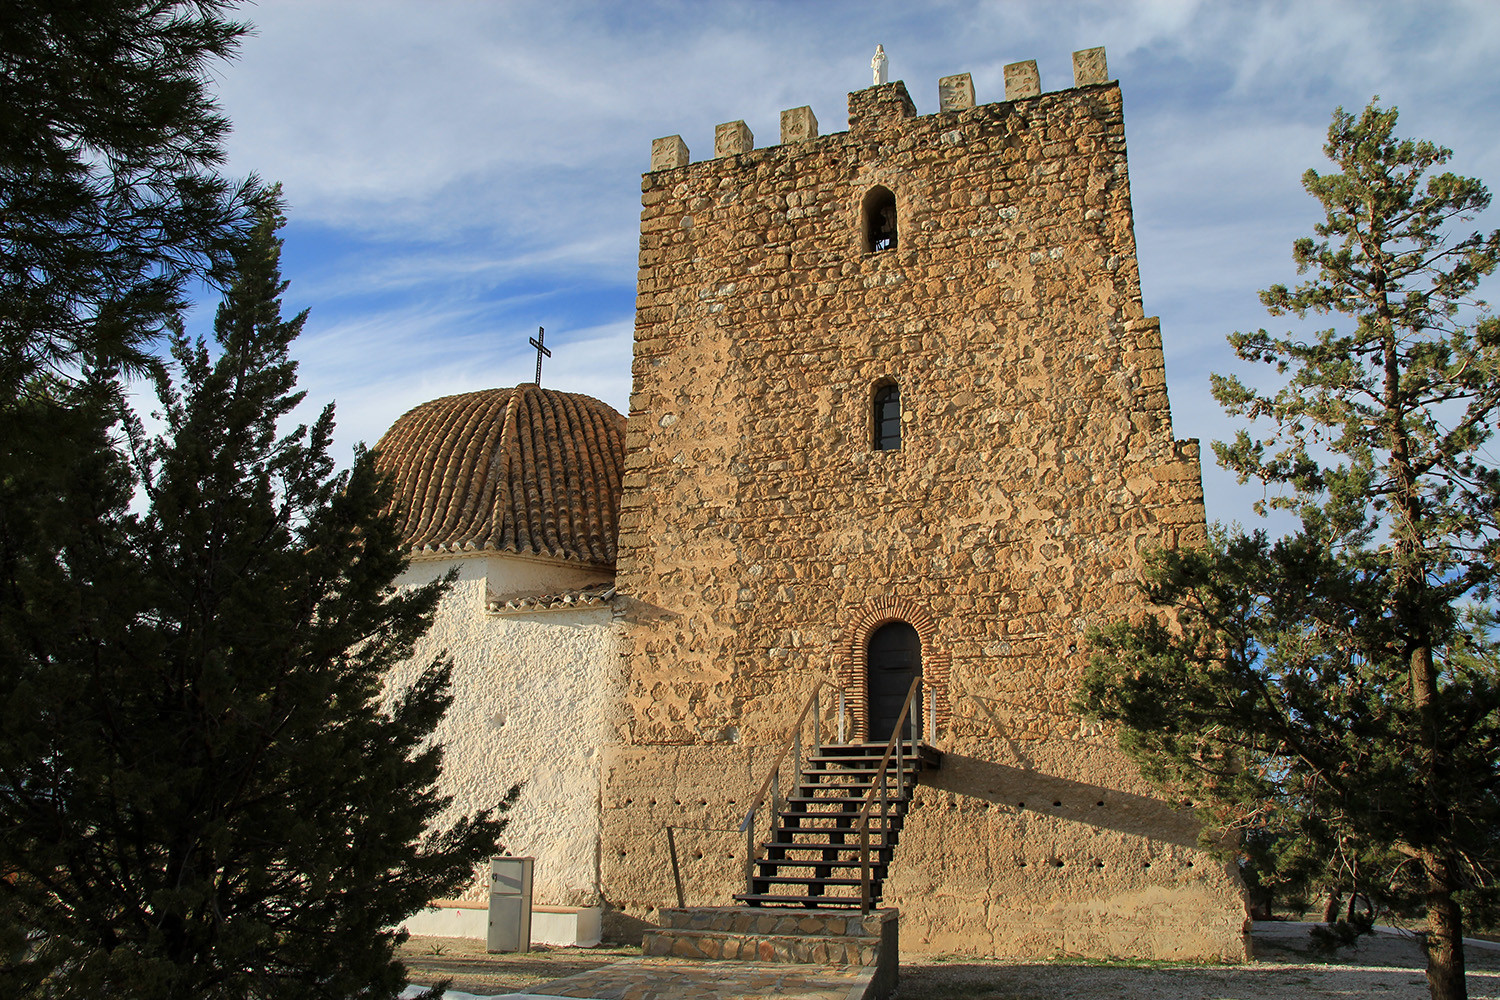 The Arabic Tower in Cúllar